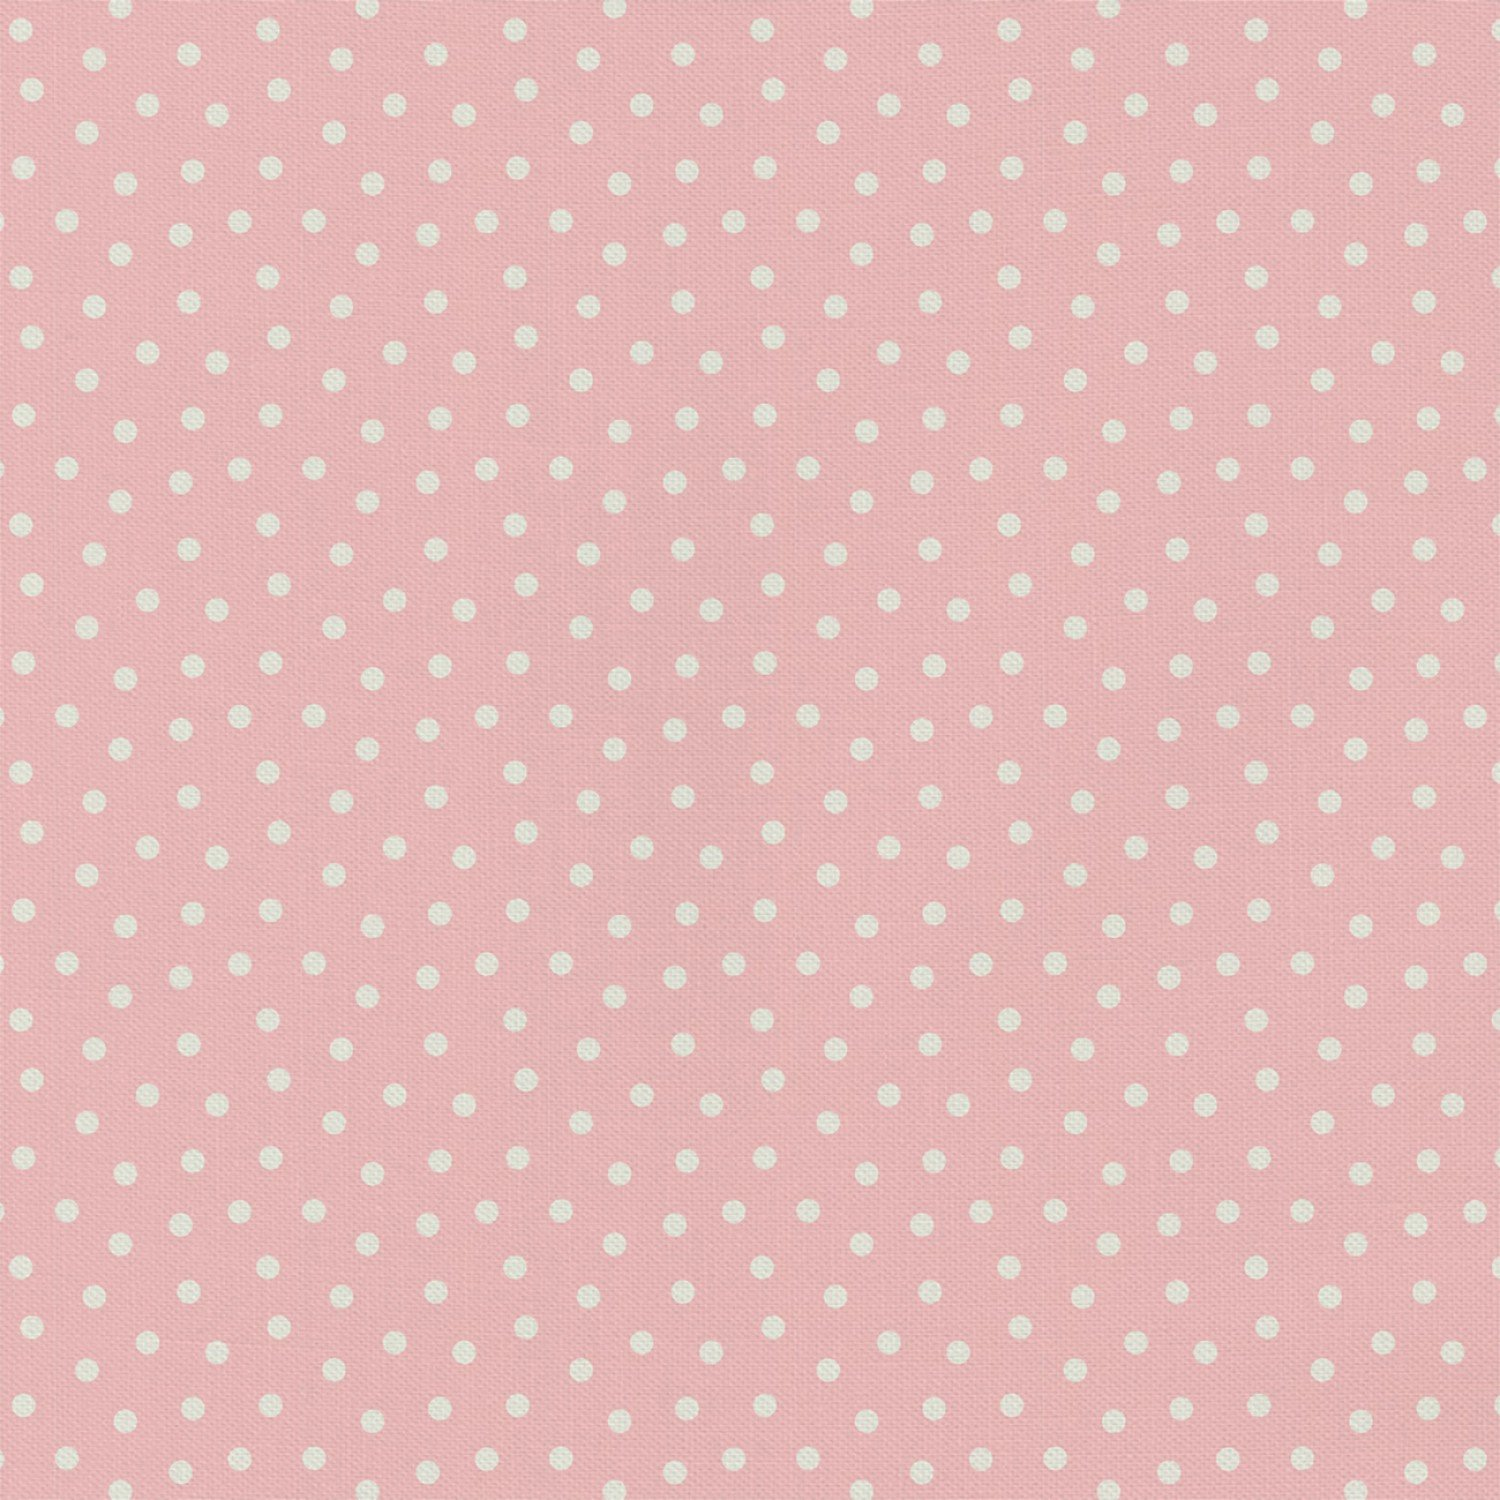 PROMO* CF-With Love 4142006WM-01 Blush - Spotted